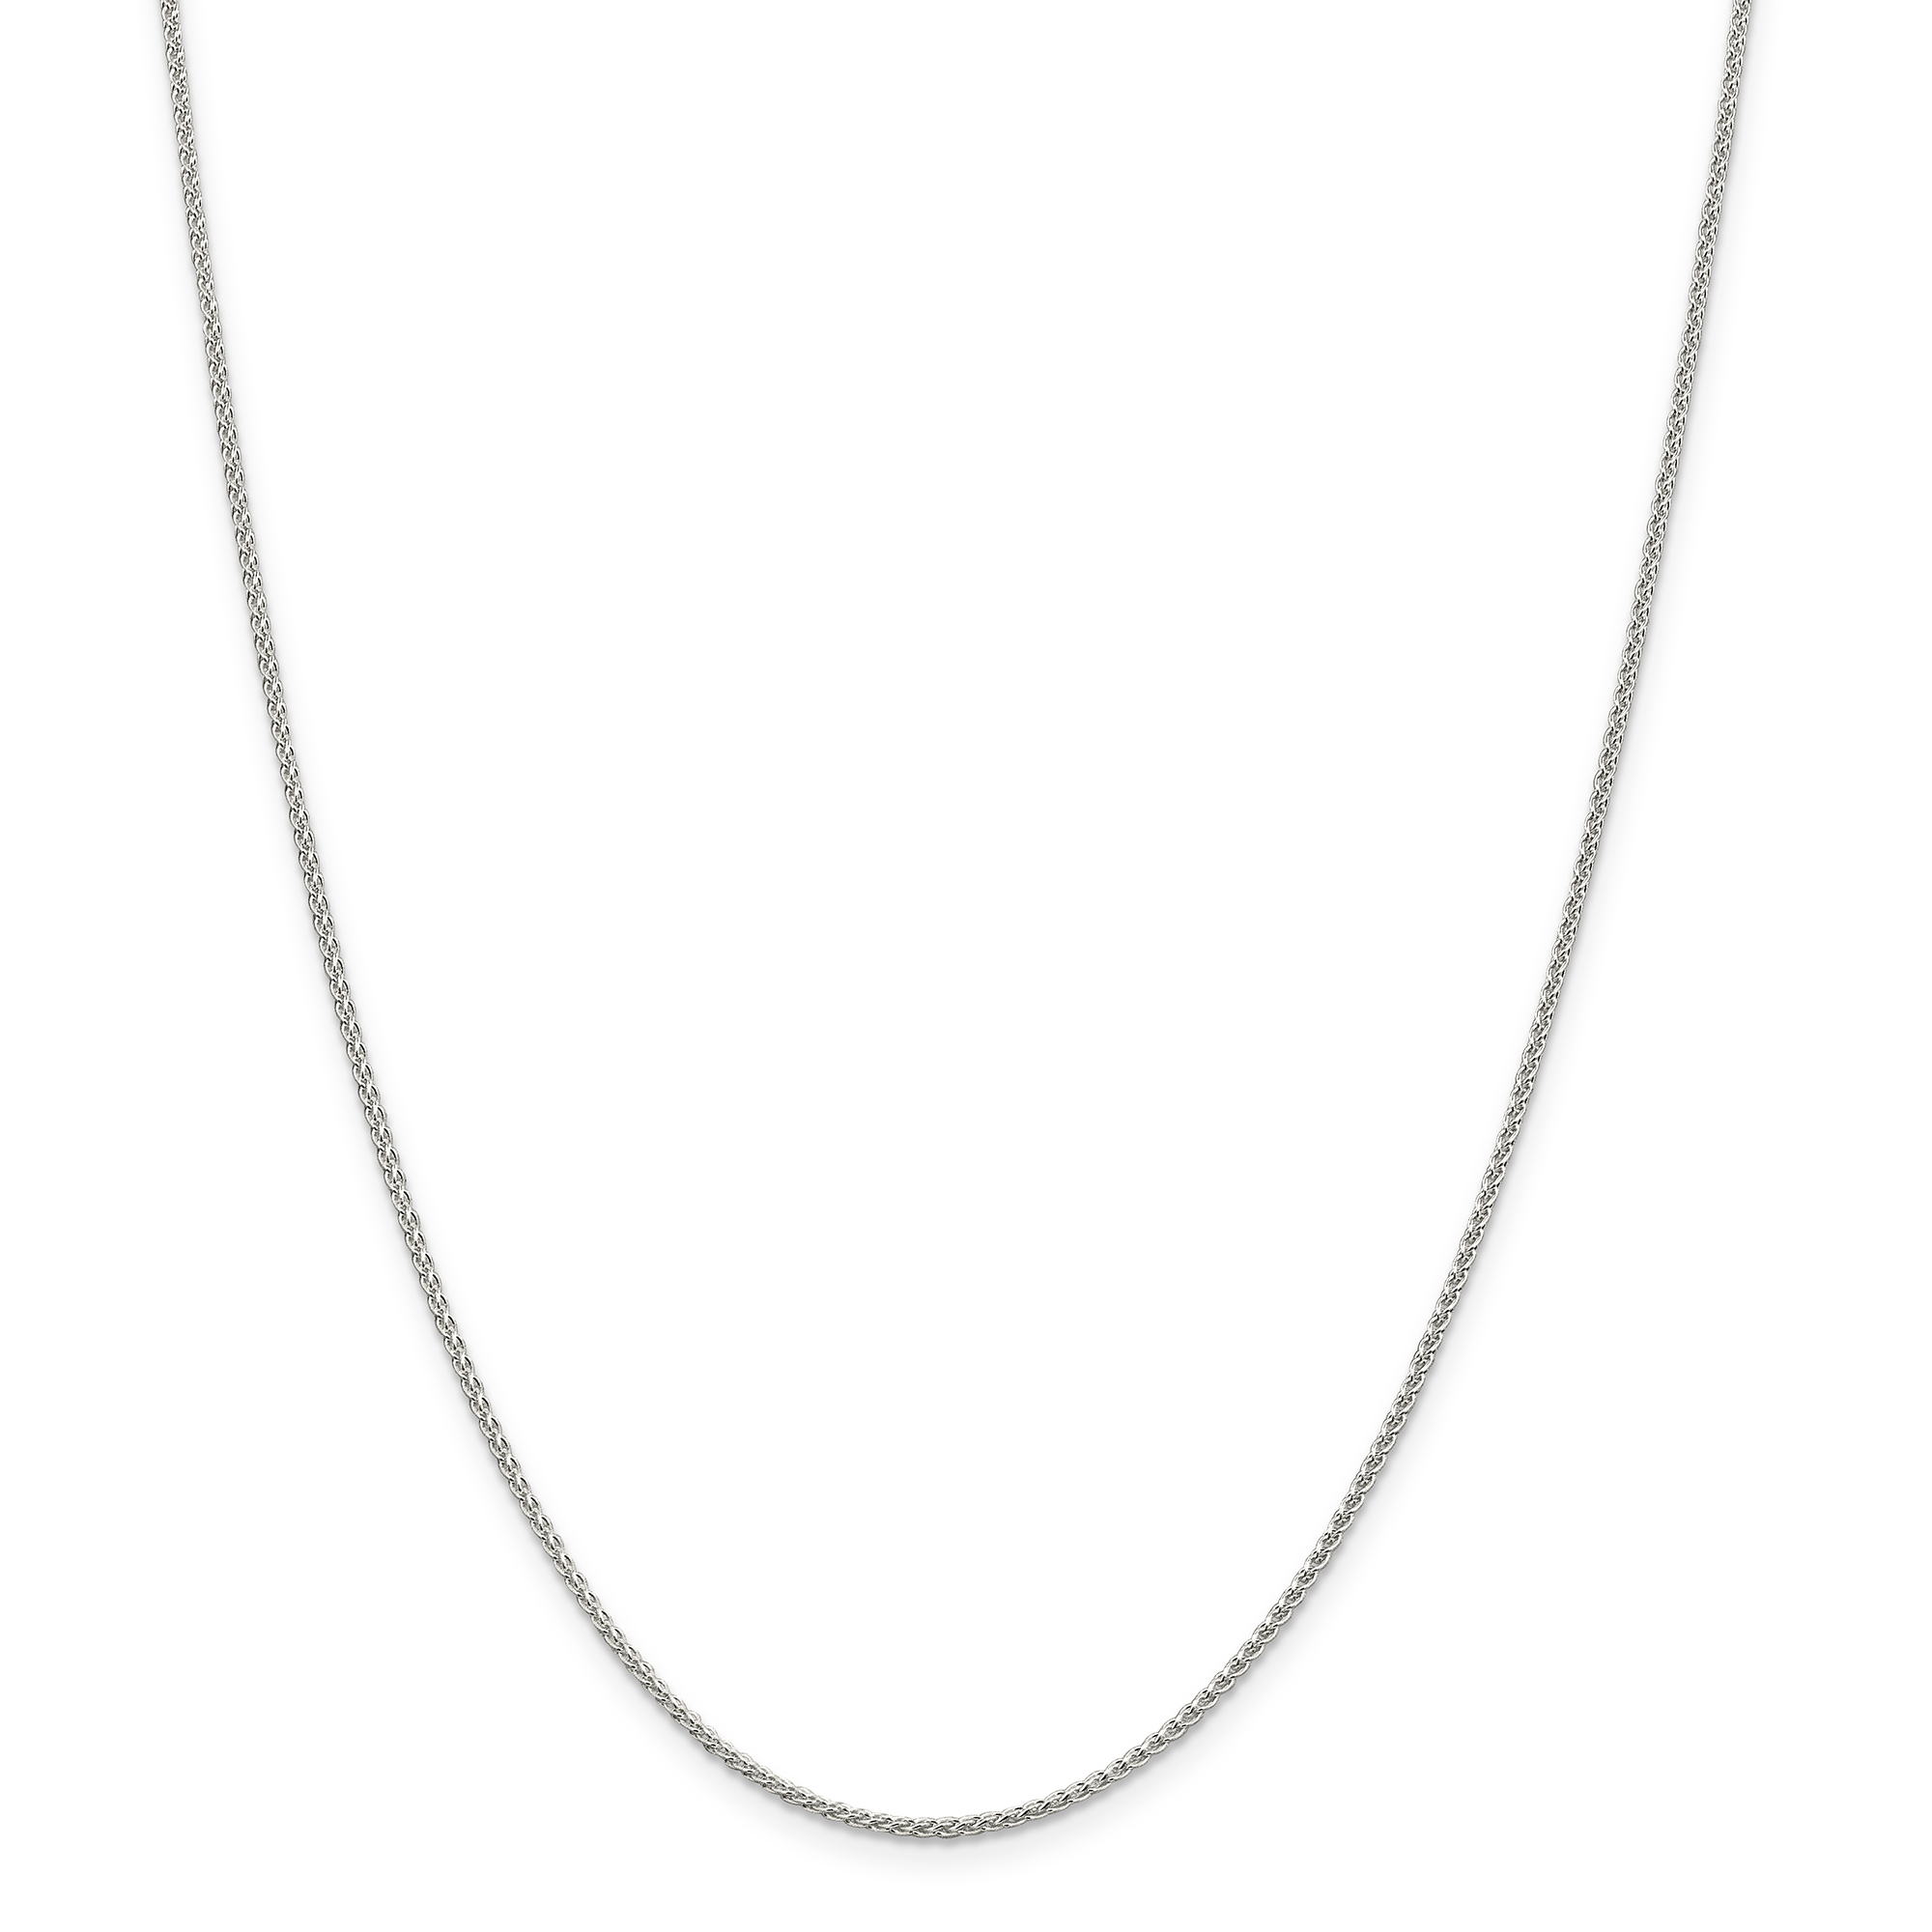 925 Sterling Silver 1.50mm Round Spiga Chain Necklace 22 Inch Pendant Charm Wheat Fine Jewelry Gifts For Women For Her - image 5 de 5